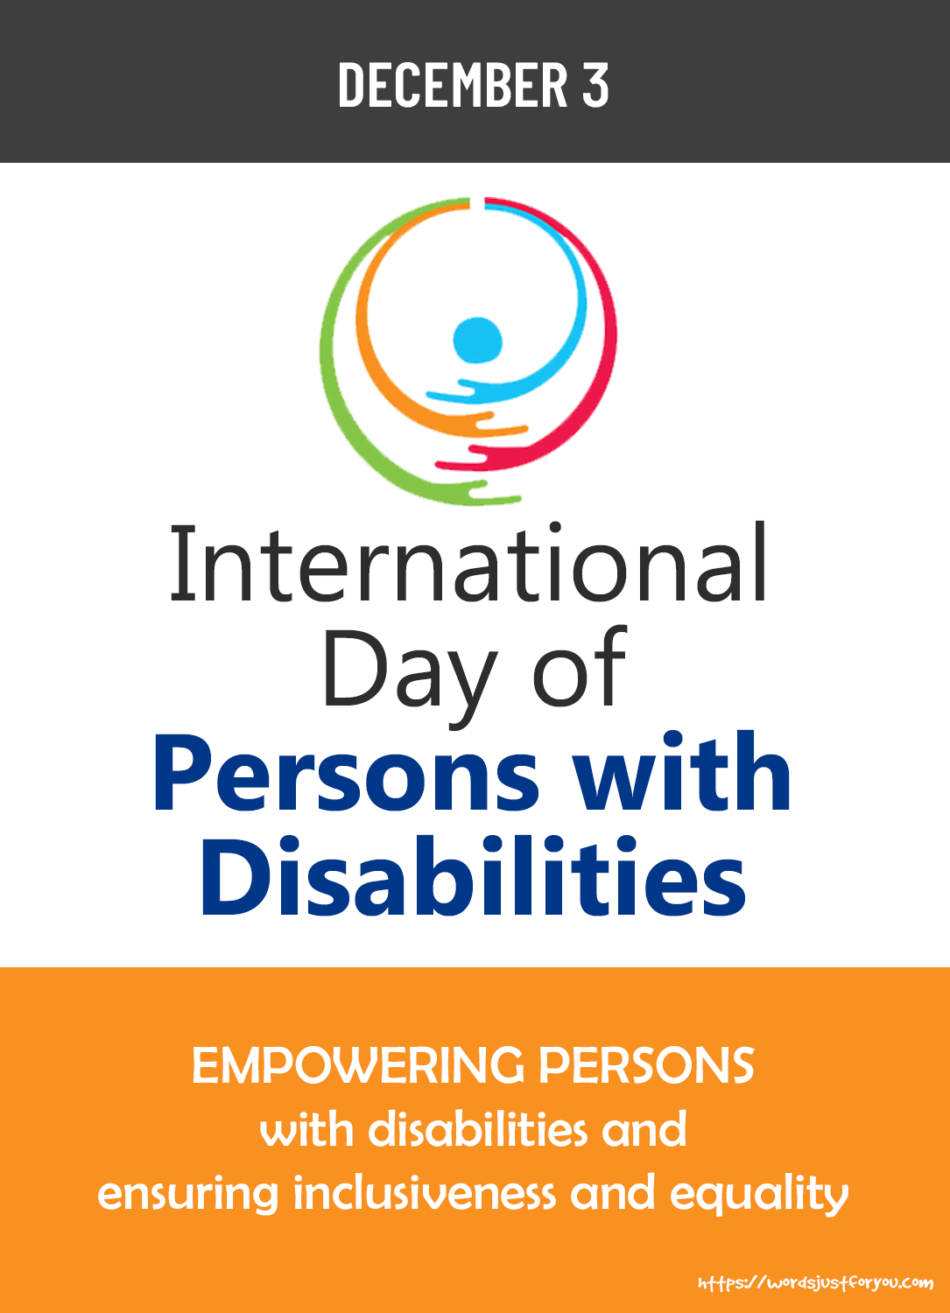 International Day of Persons with Disabilities, 3 December